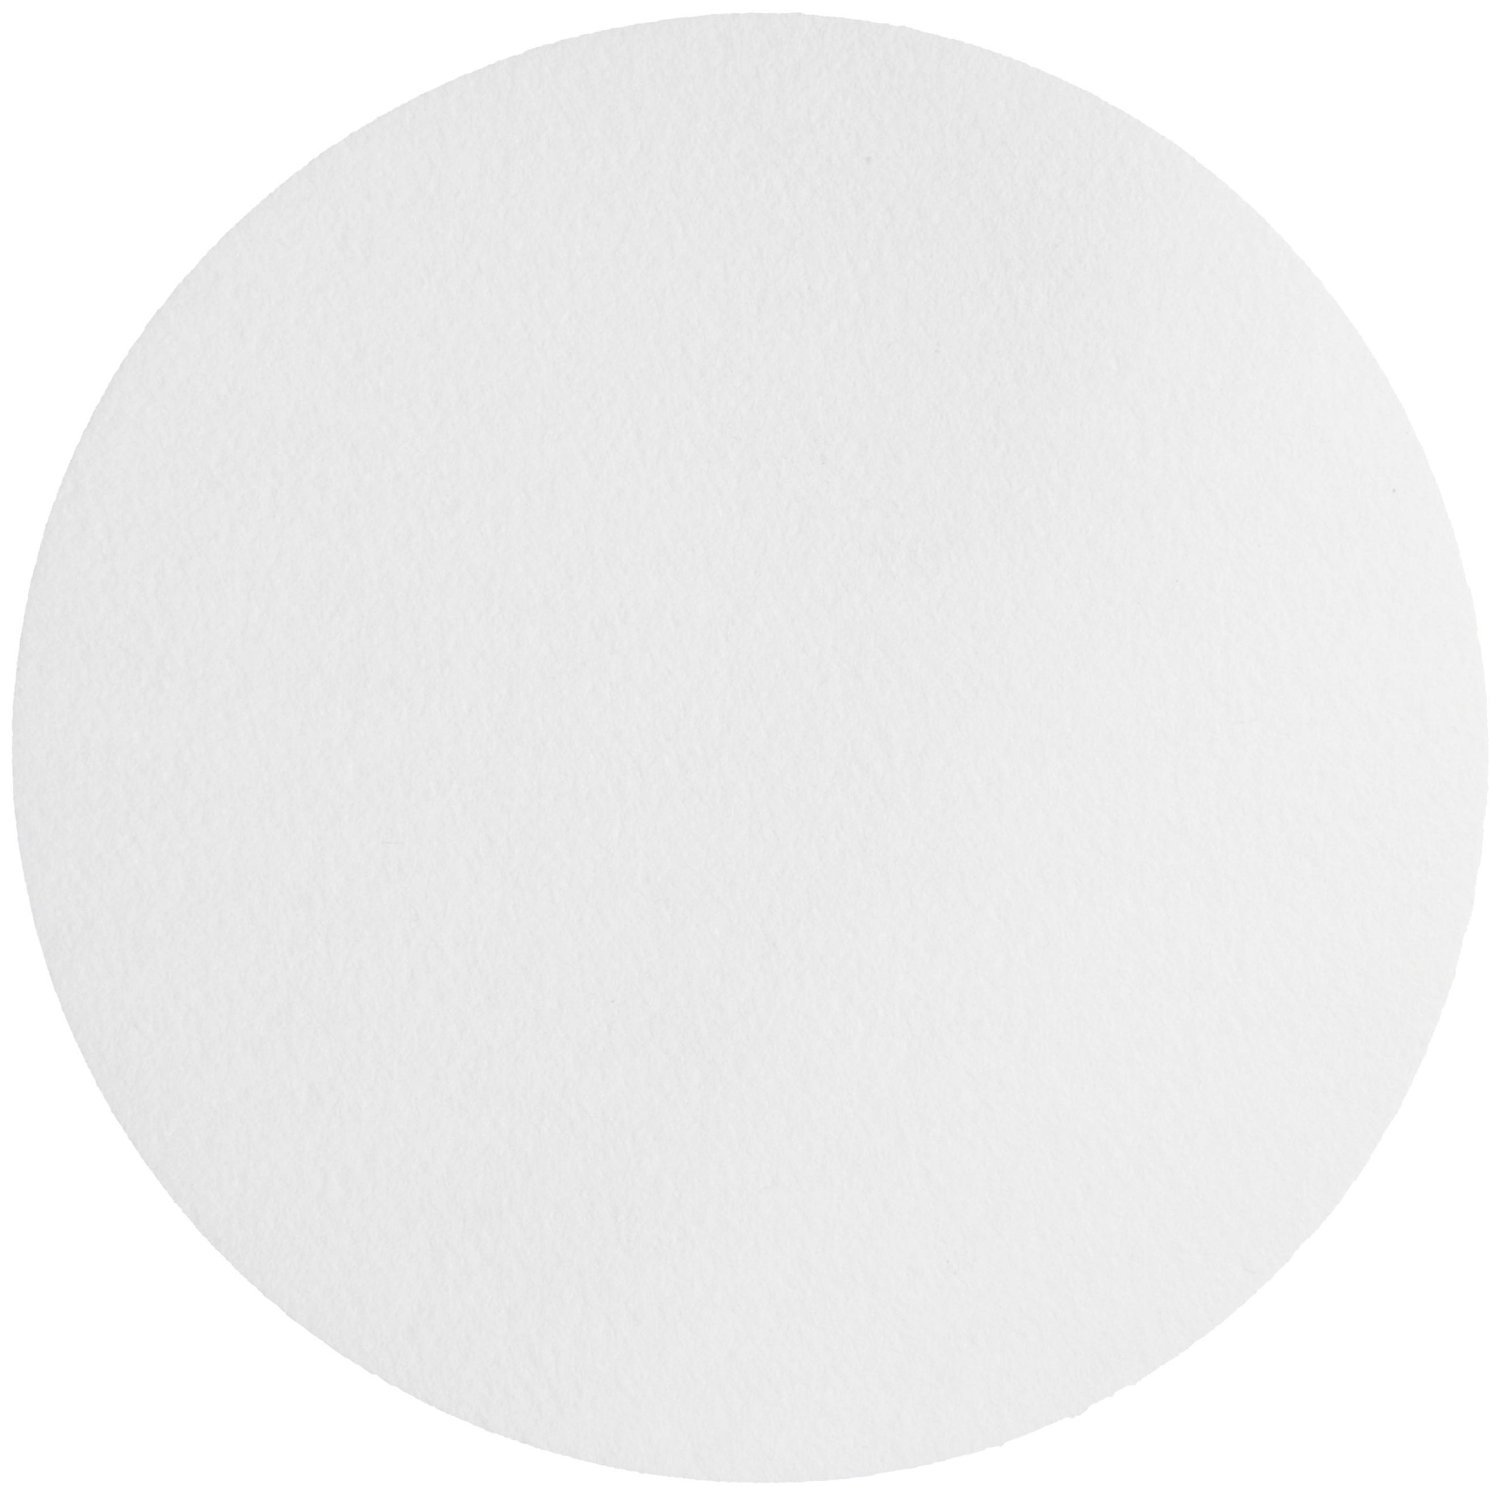 Whatman 1006 090 Quantitative Filter Paper Circles 3 Micron 35 s 100mL sq inch Flow Rate Grade 6 90mm Diameter Pack of 100